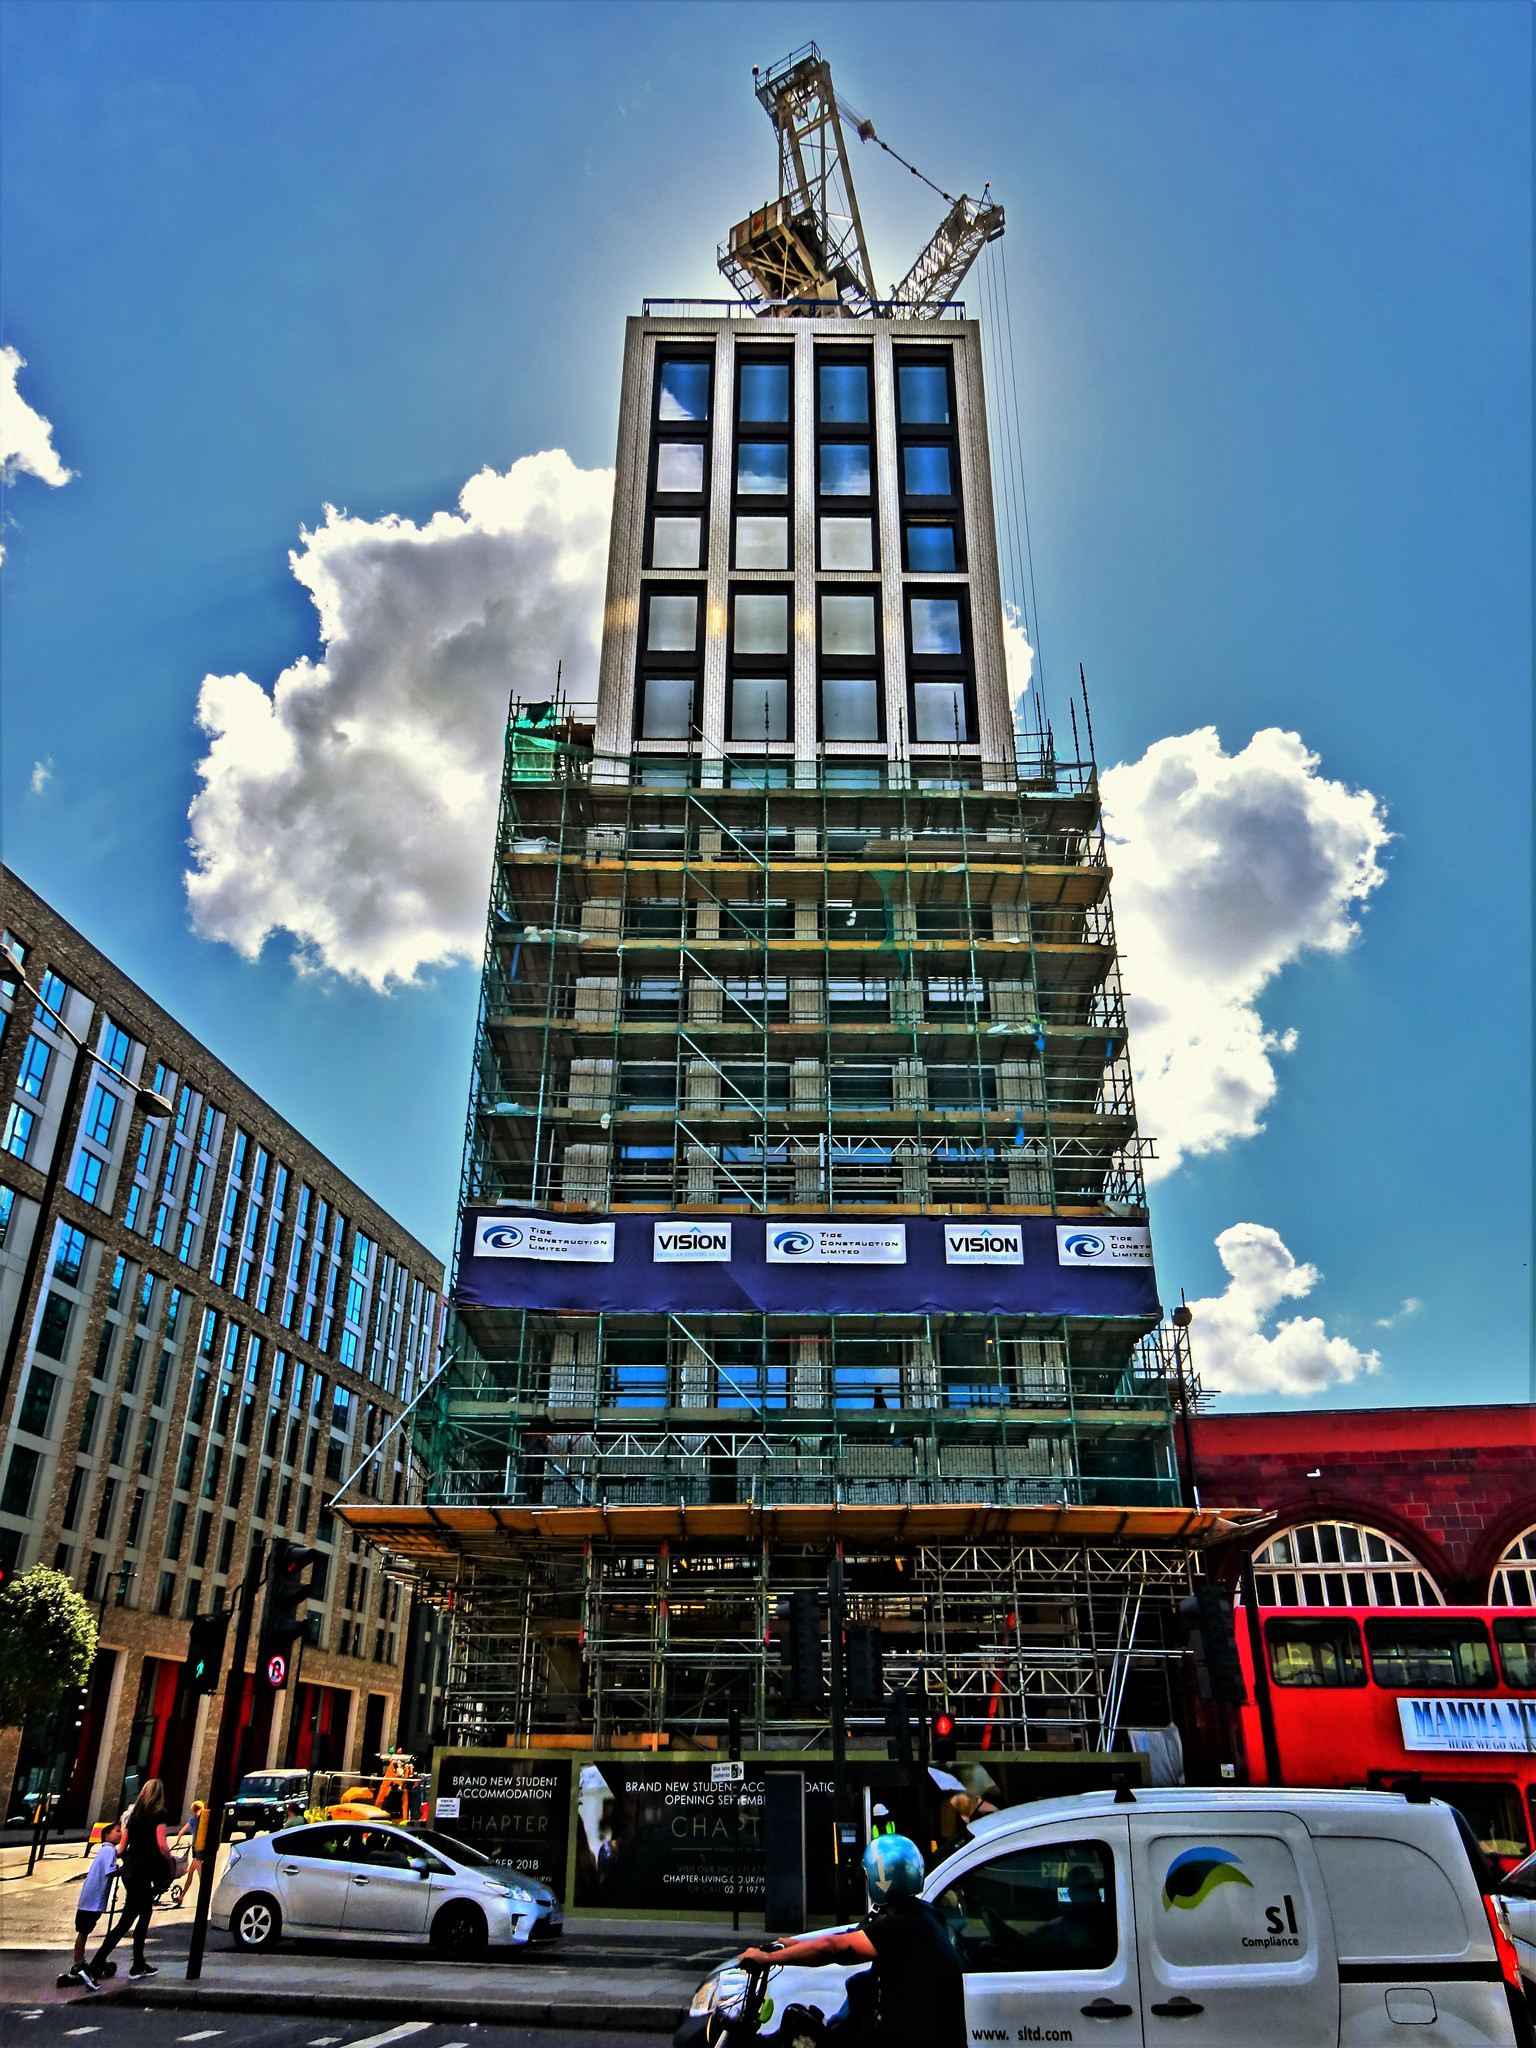 New Student Accommodation in London